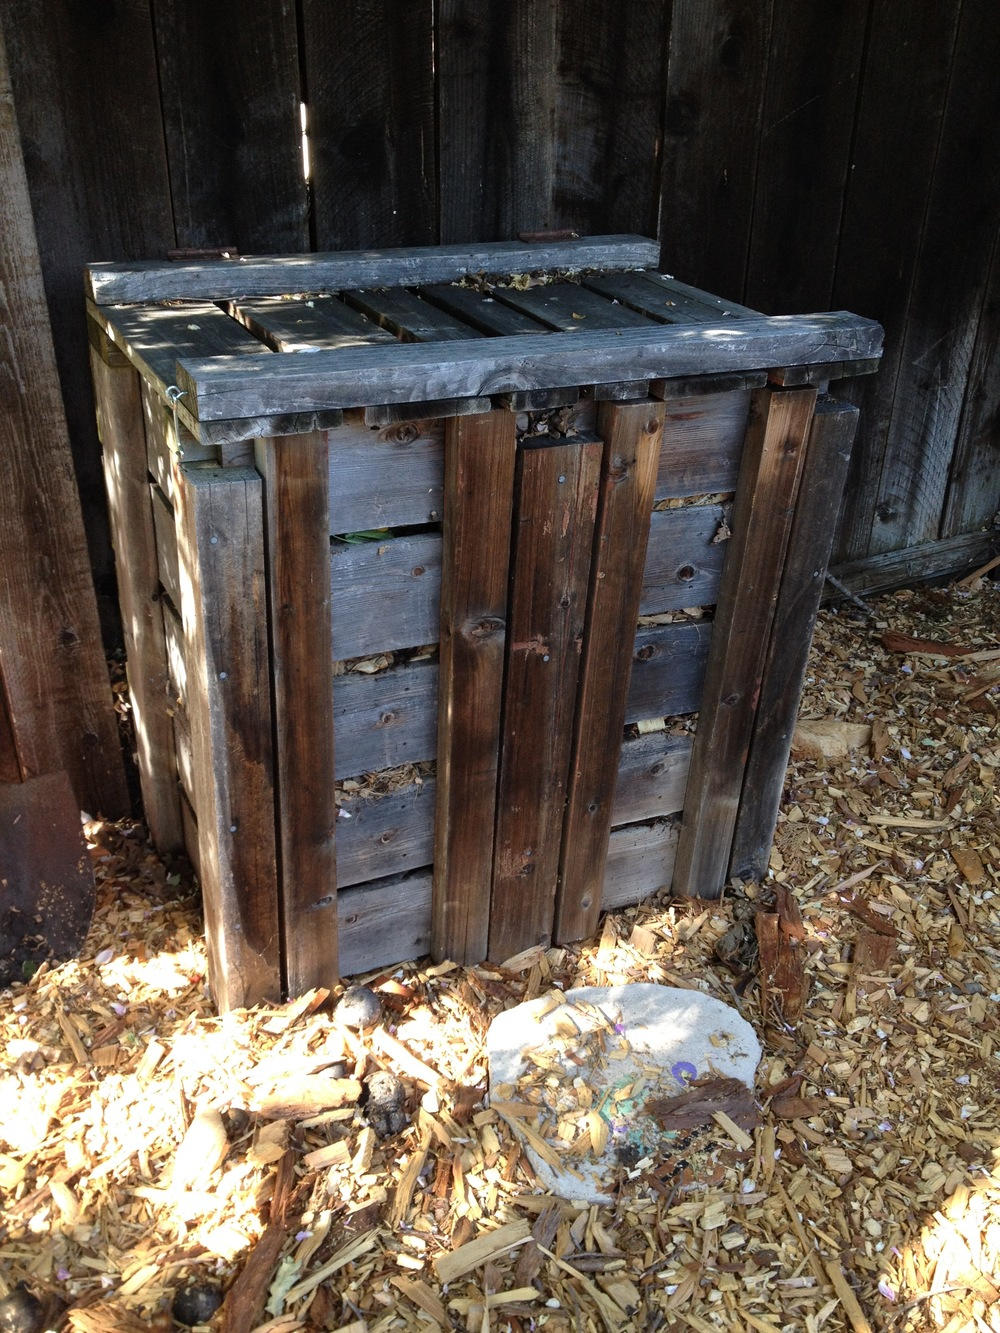 Compost/Worm Bin, several years ago before plants surrounded it. Dad made this out of reclaimed redwood and it has lasted 12 years so far.